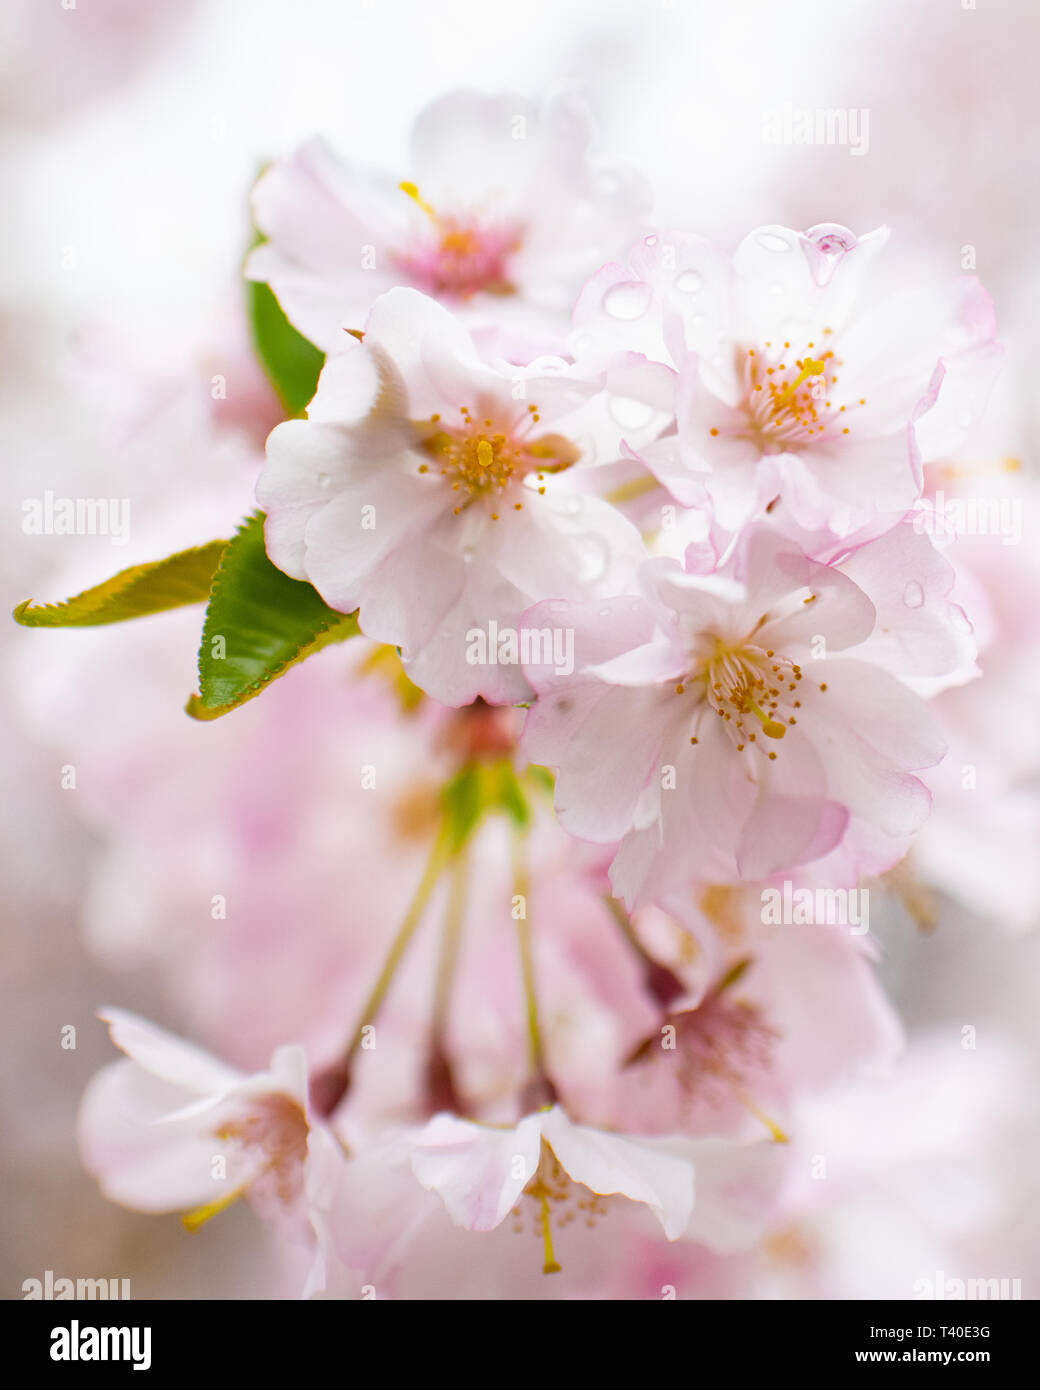 Cherry tree blossoms in spring - prunus rosaceae blossom close up -flowering trees blooming with pink and white flowers - cherry tree blossom close up Stock Photo